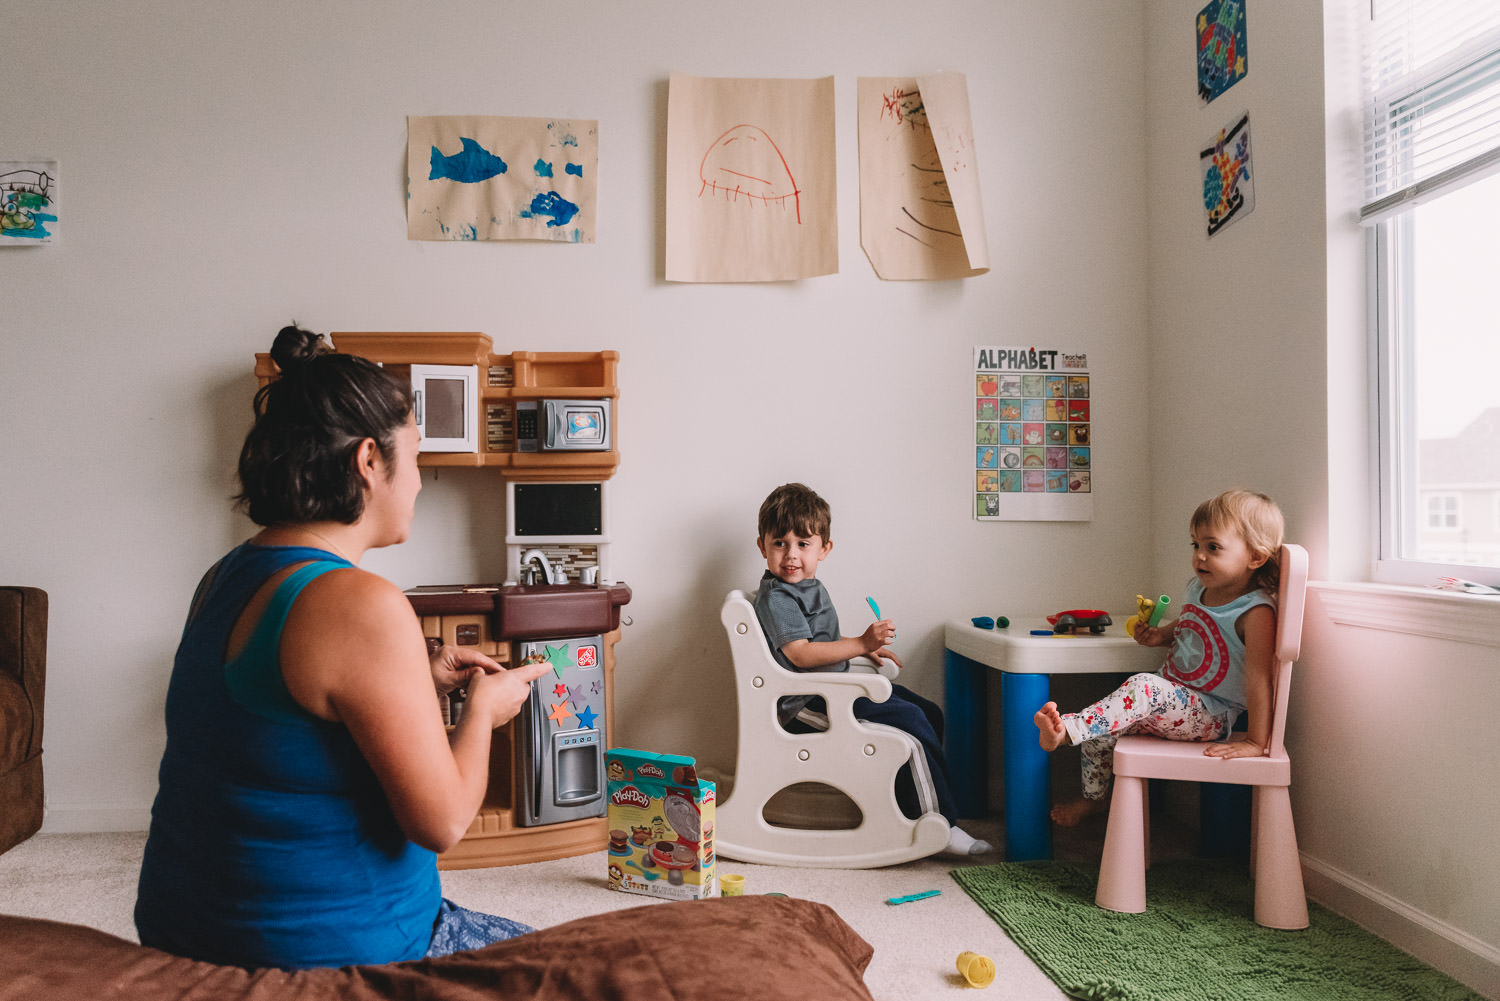 Children and their mom play in the playroom.